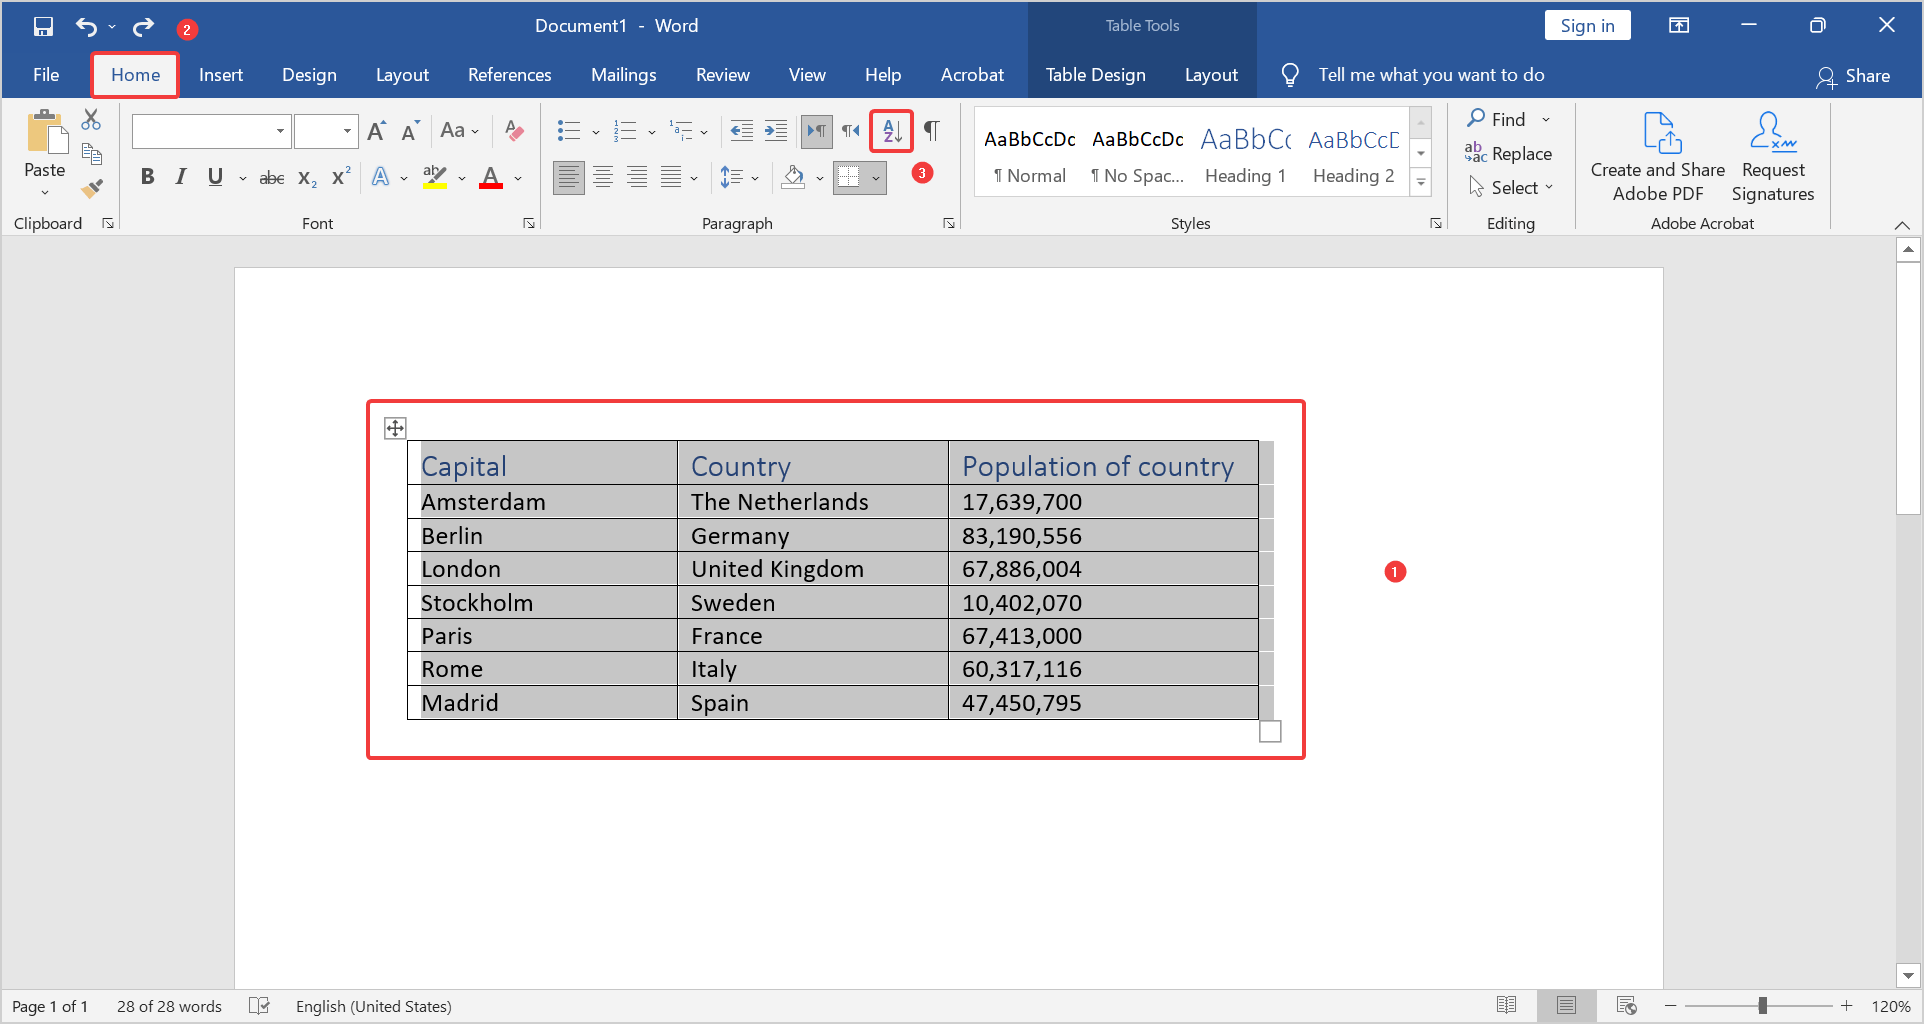 Sort table alphabetically by clicking on the sort icon.